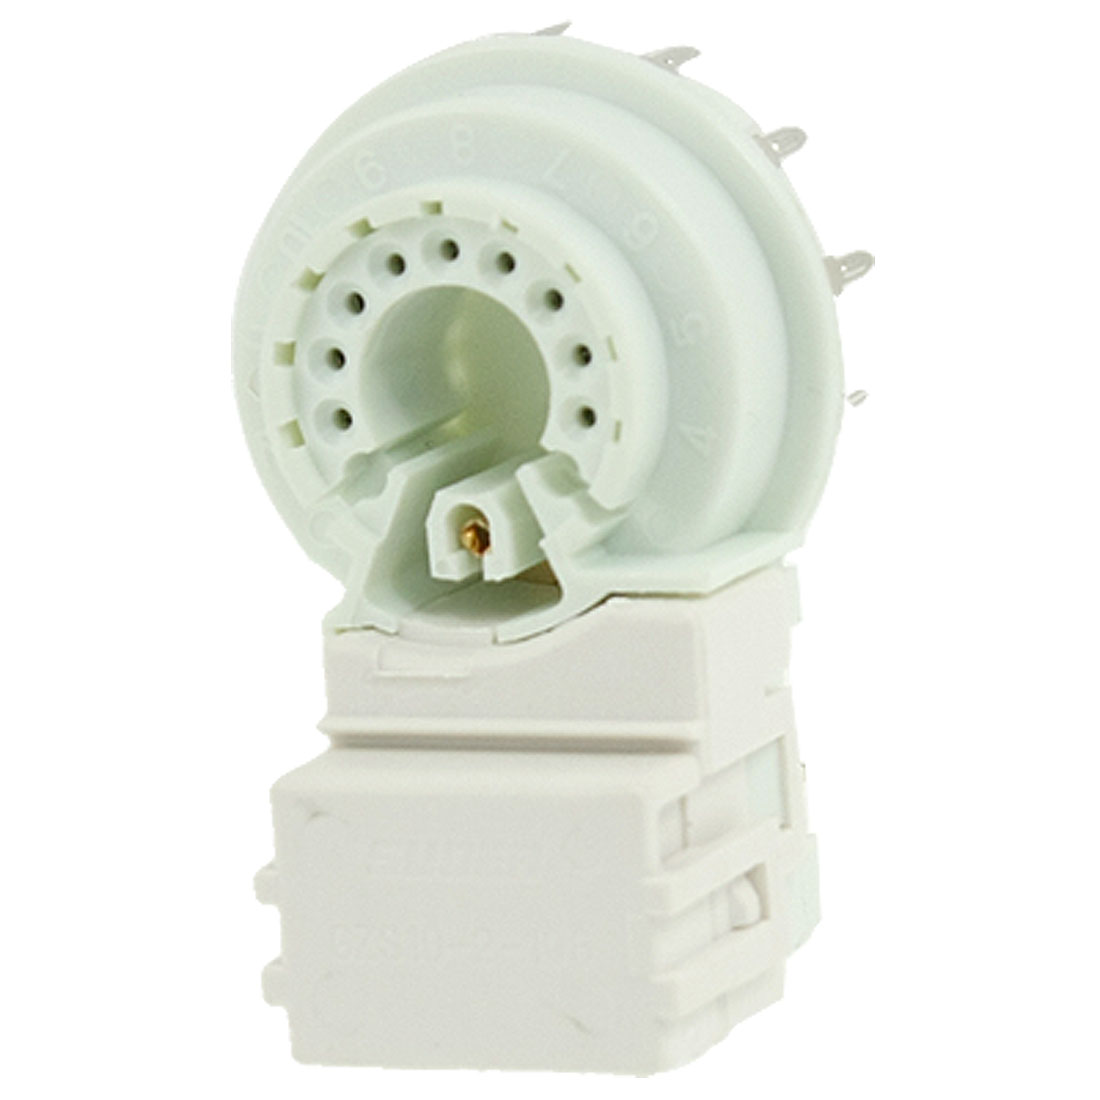 GZS10-2-108 TV Sets Soldering 9 Pin Terminals CRT Socket White